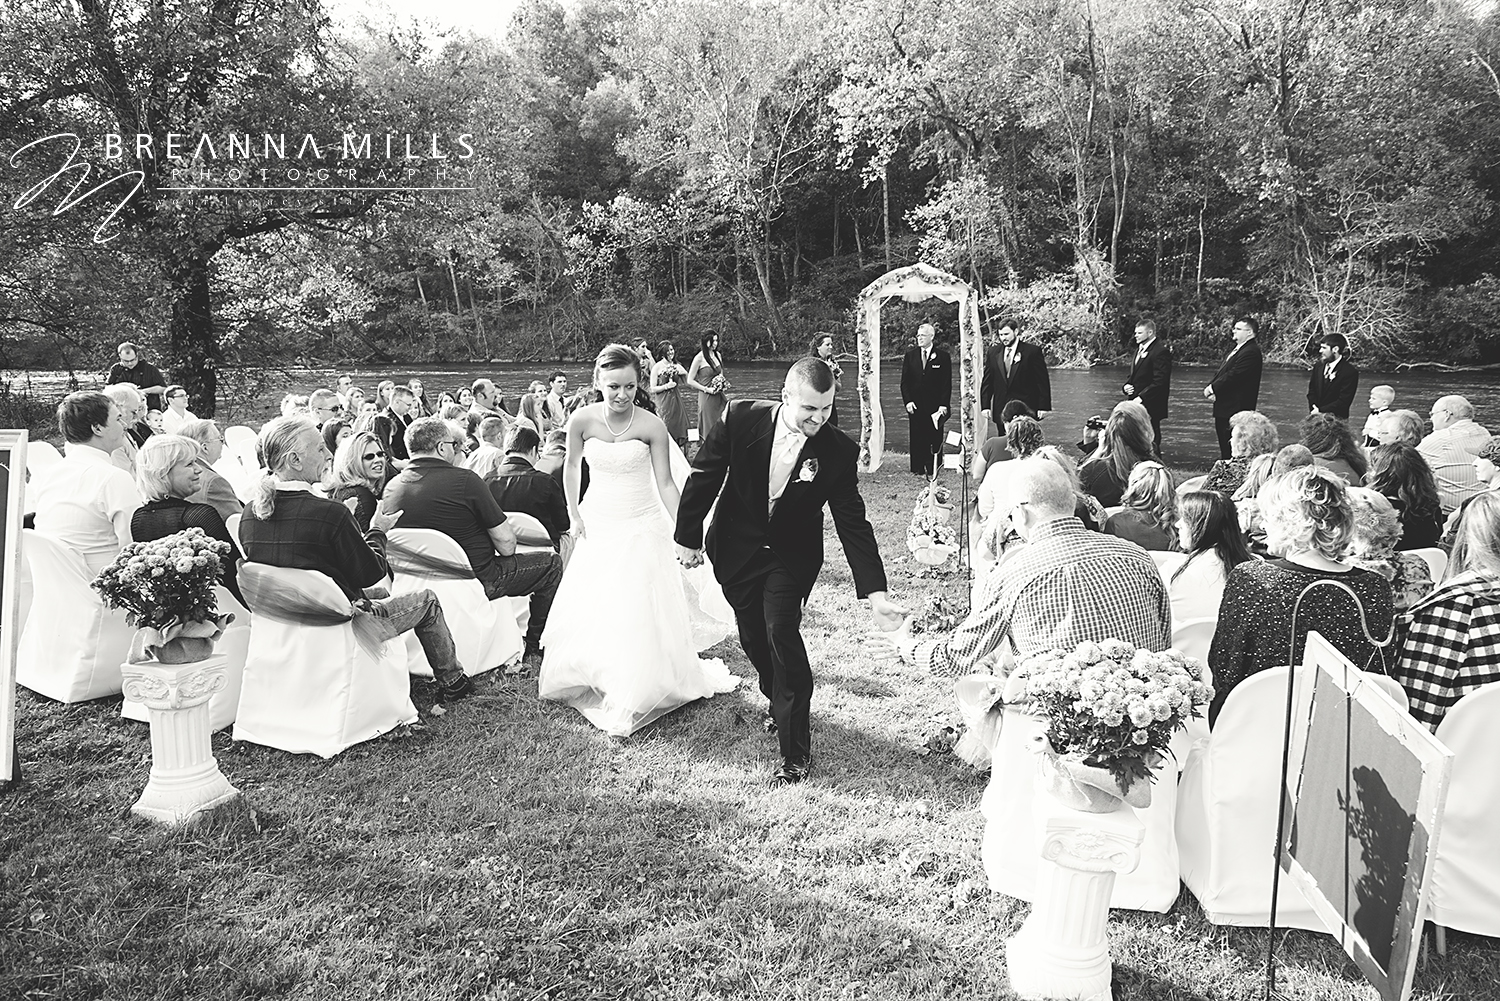 Johnson City wedding photographer, Breanna Mills Photography captures a spontaneous high five on bride and grooms wedding day.